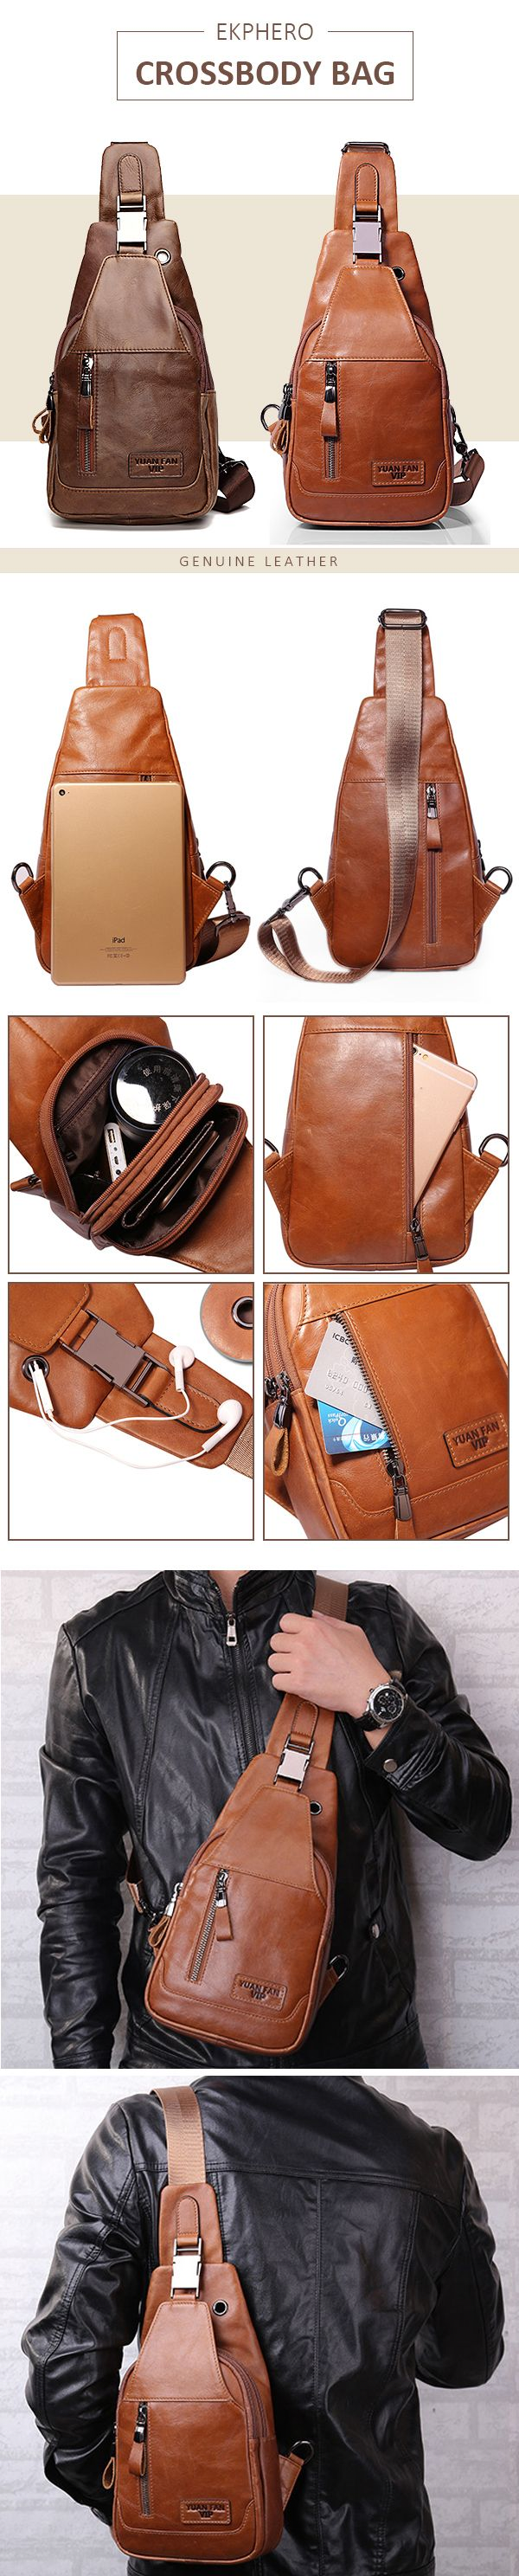 Crossbody Bags:Ekphero Men Genuine Leather Shoulder Bag Vintage Chest Bags Crossbody Bags